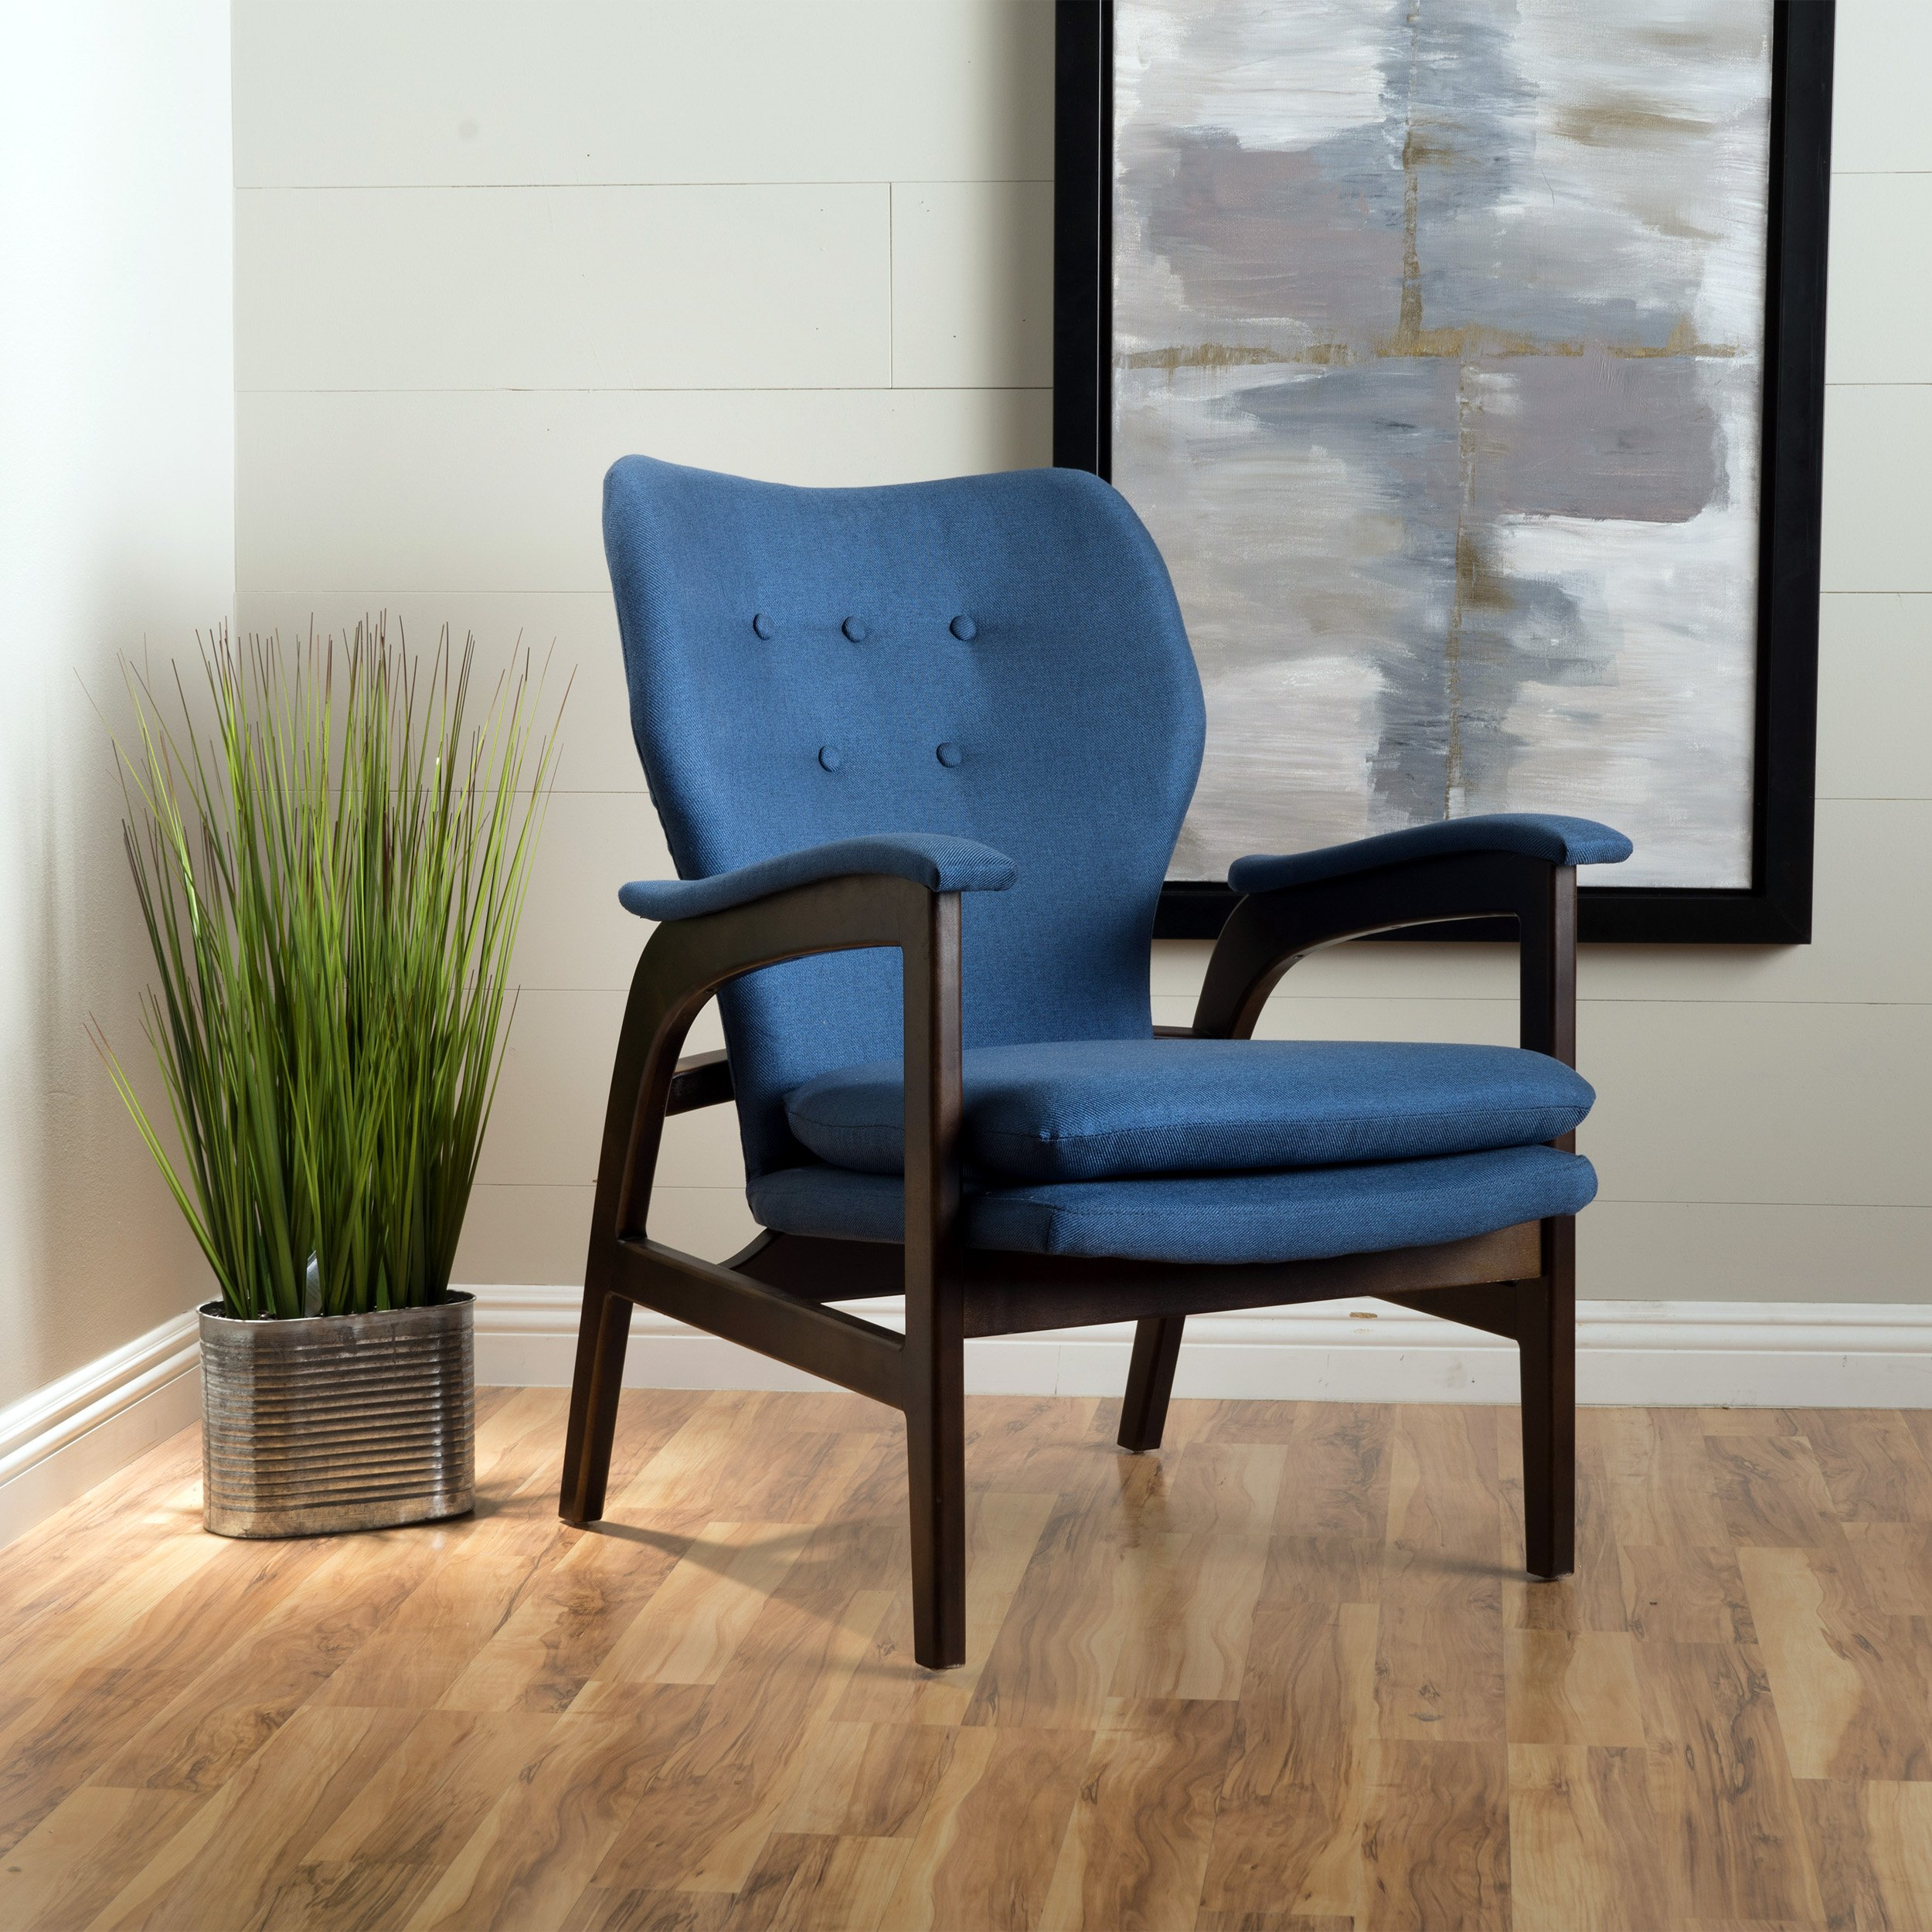 Christopher Knight Home Joseph Mid Century Modern Fabric Arm Chair, Dark Navy by Christopher Knight Home